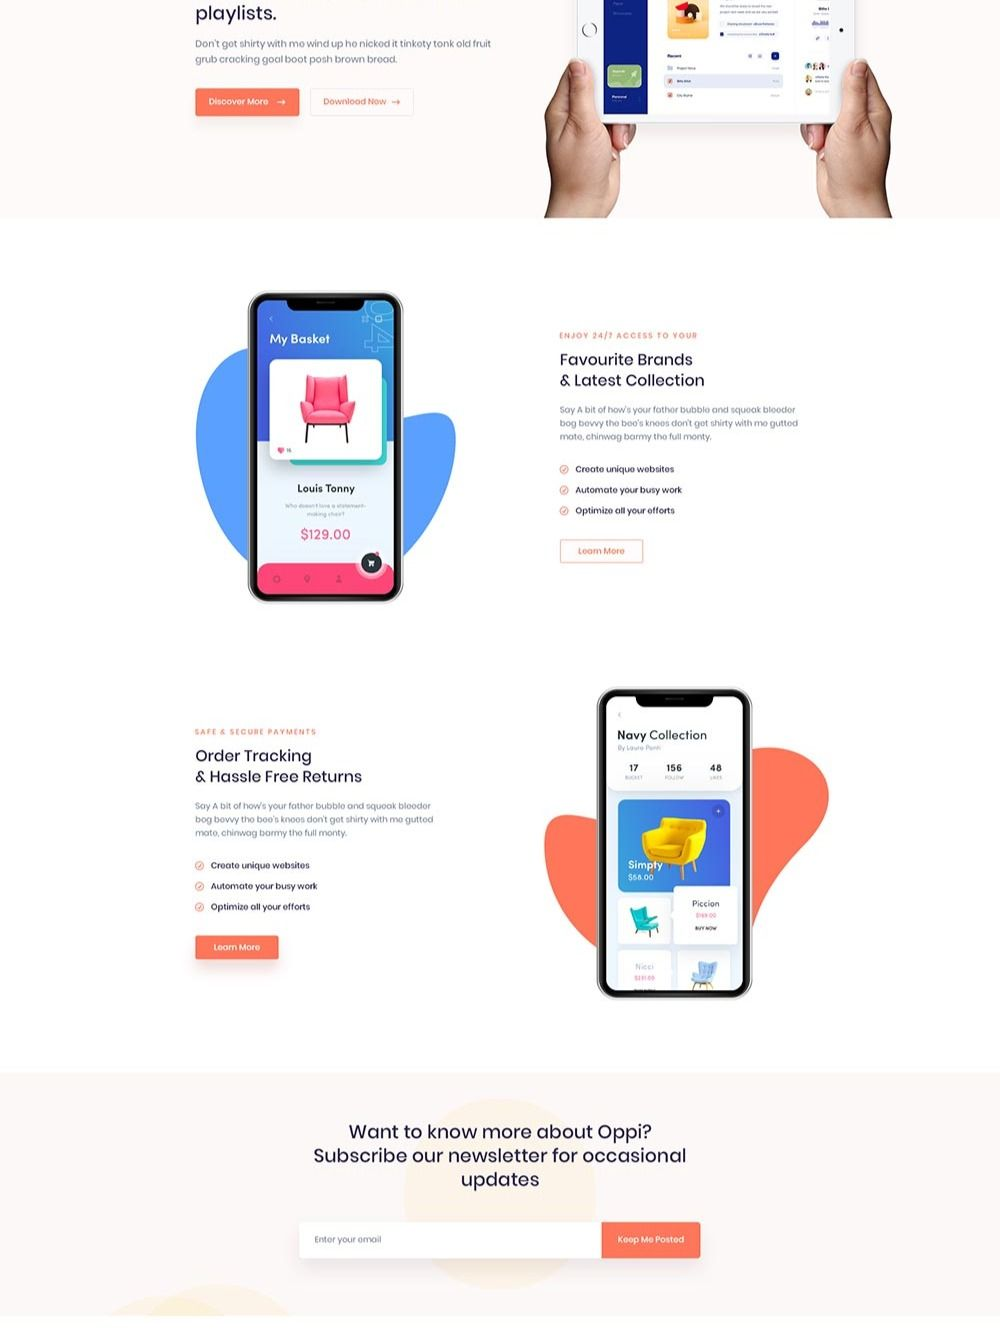 Pin by Design Gallery on Landing Page Design in 2020